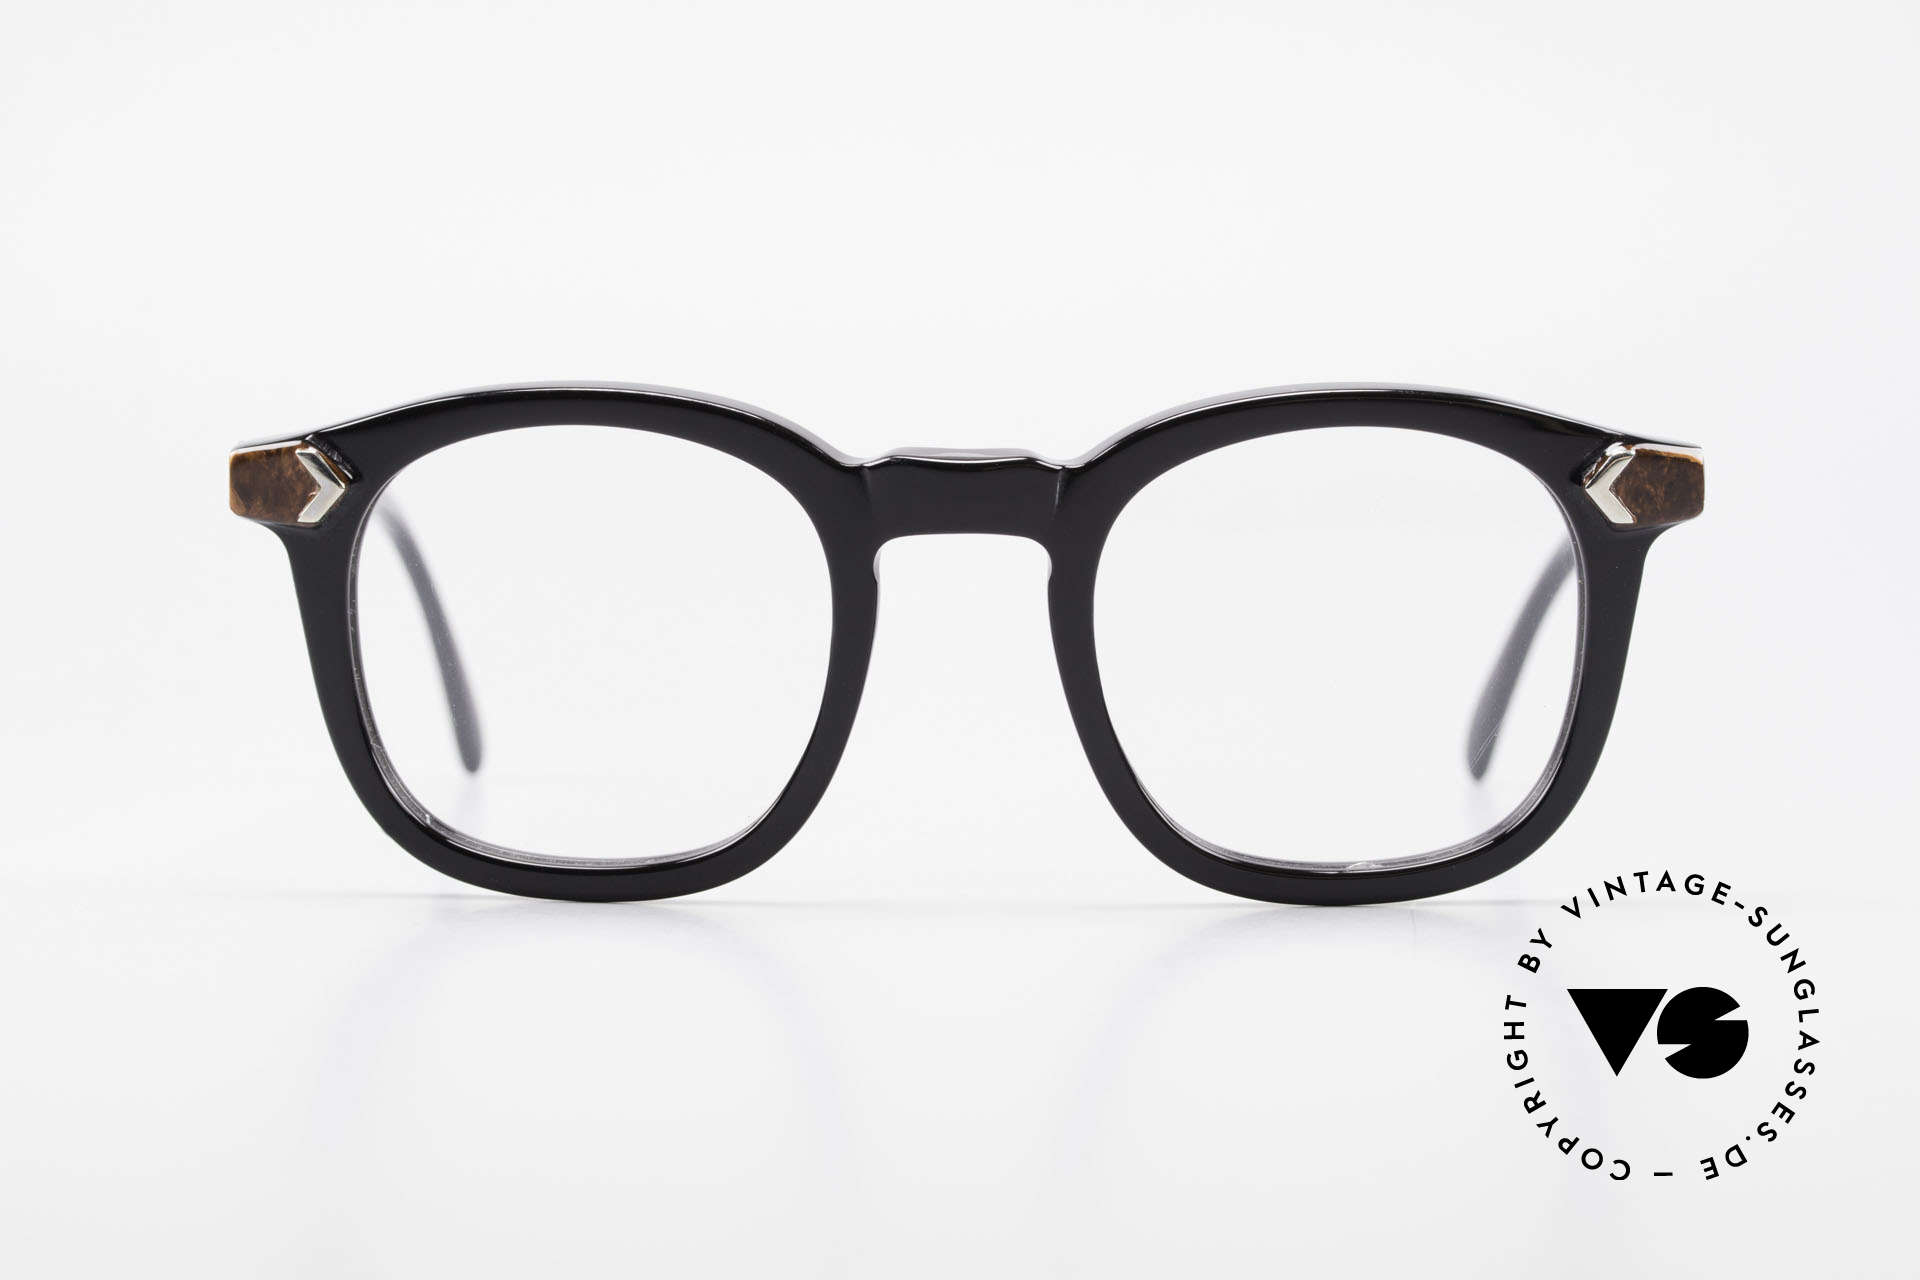 Traction Productions Allen Woody Allen Glasses 1980's, handmade in the 1980's in Morez (Jura Region), Made for Men and Women